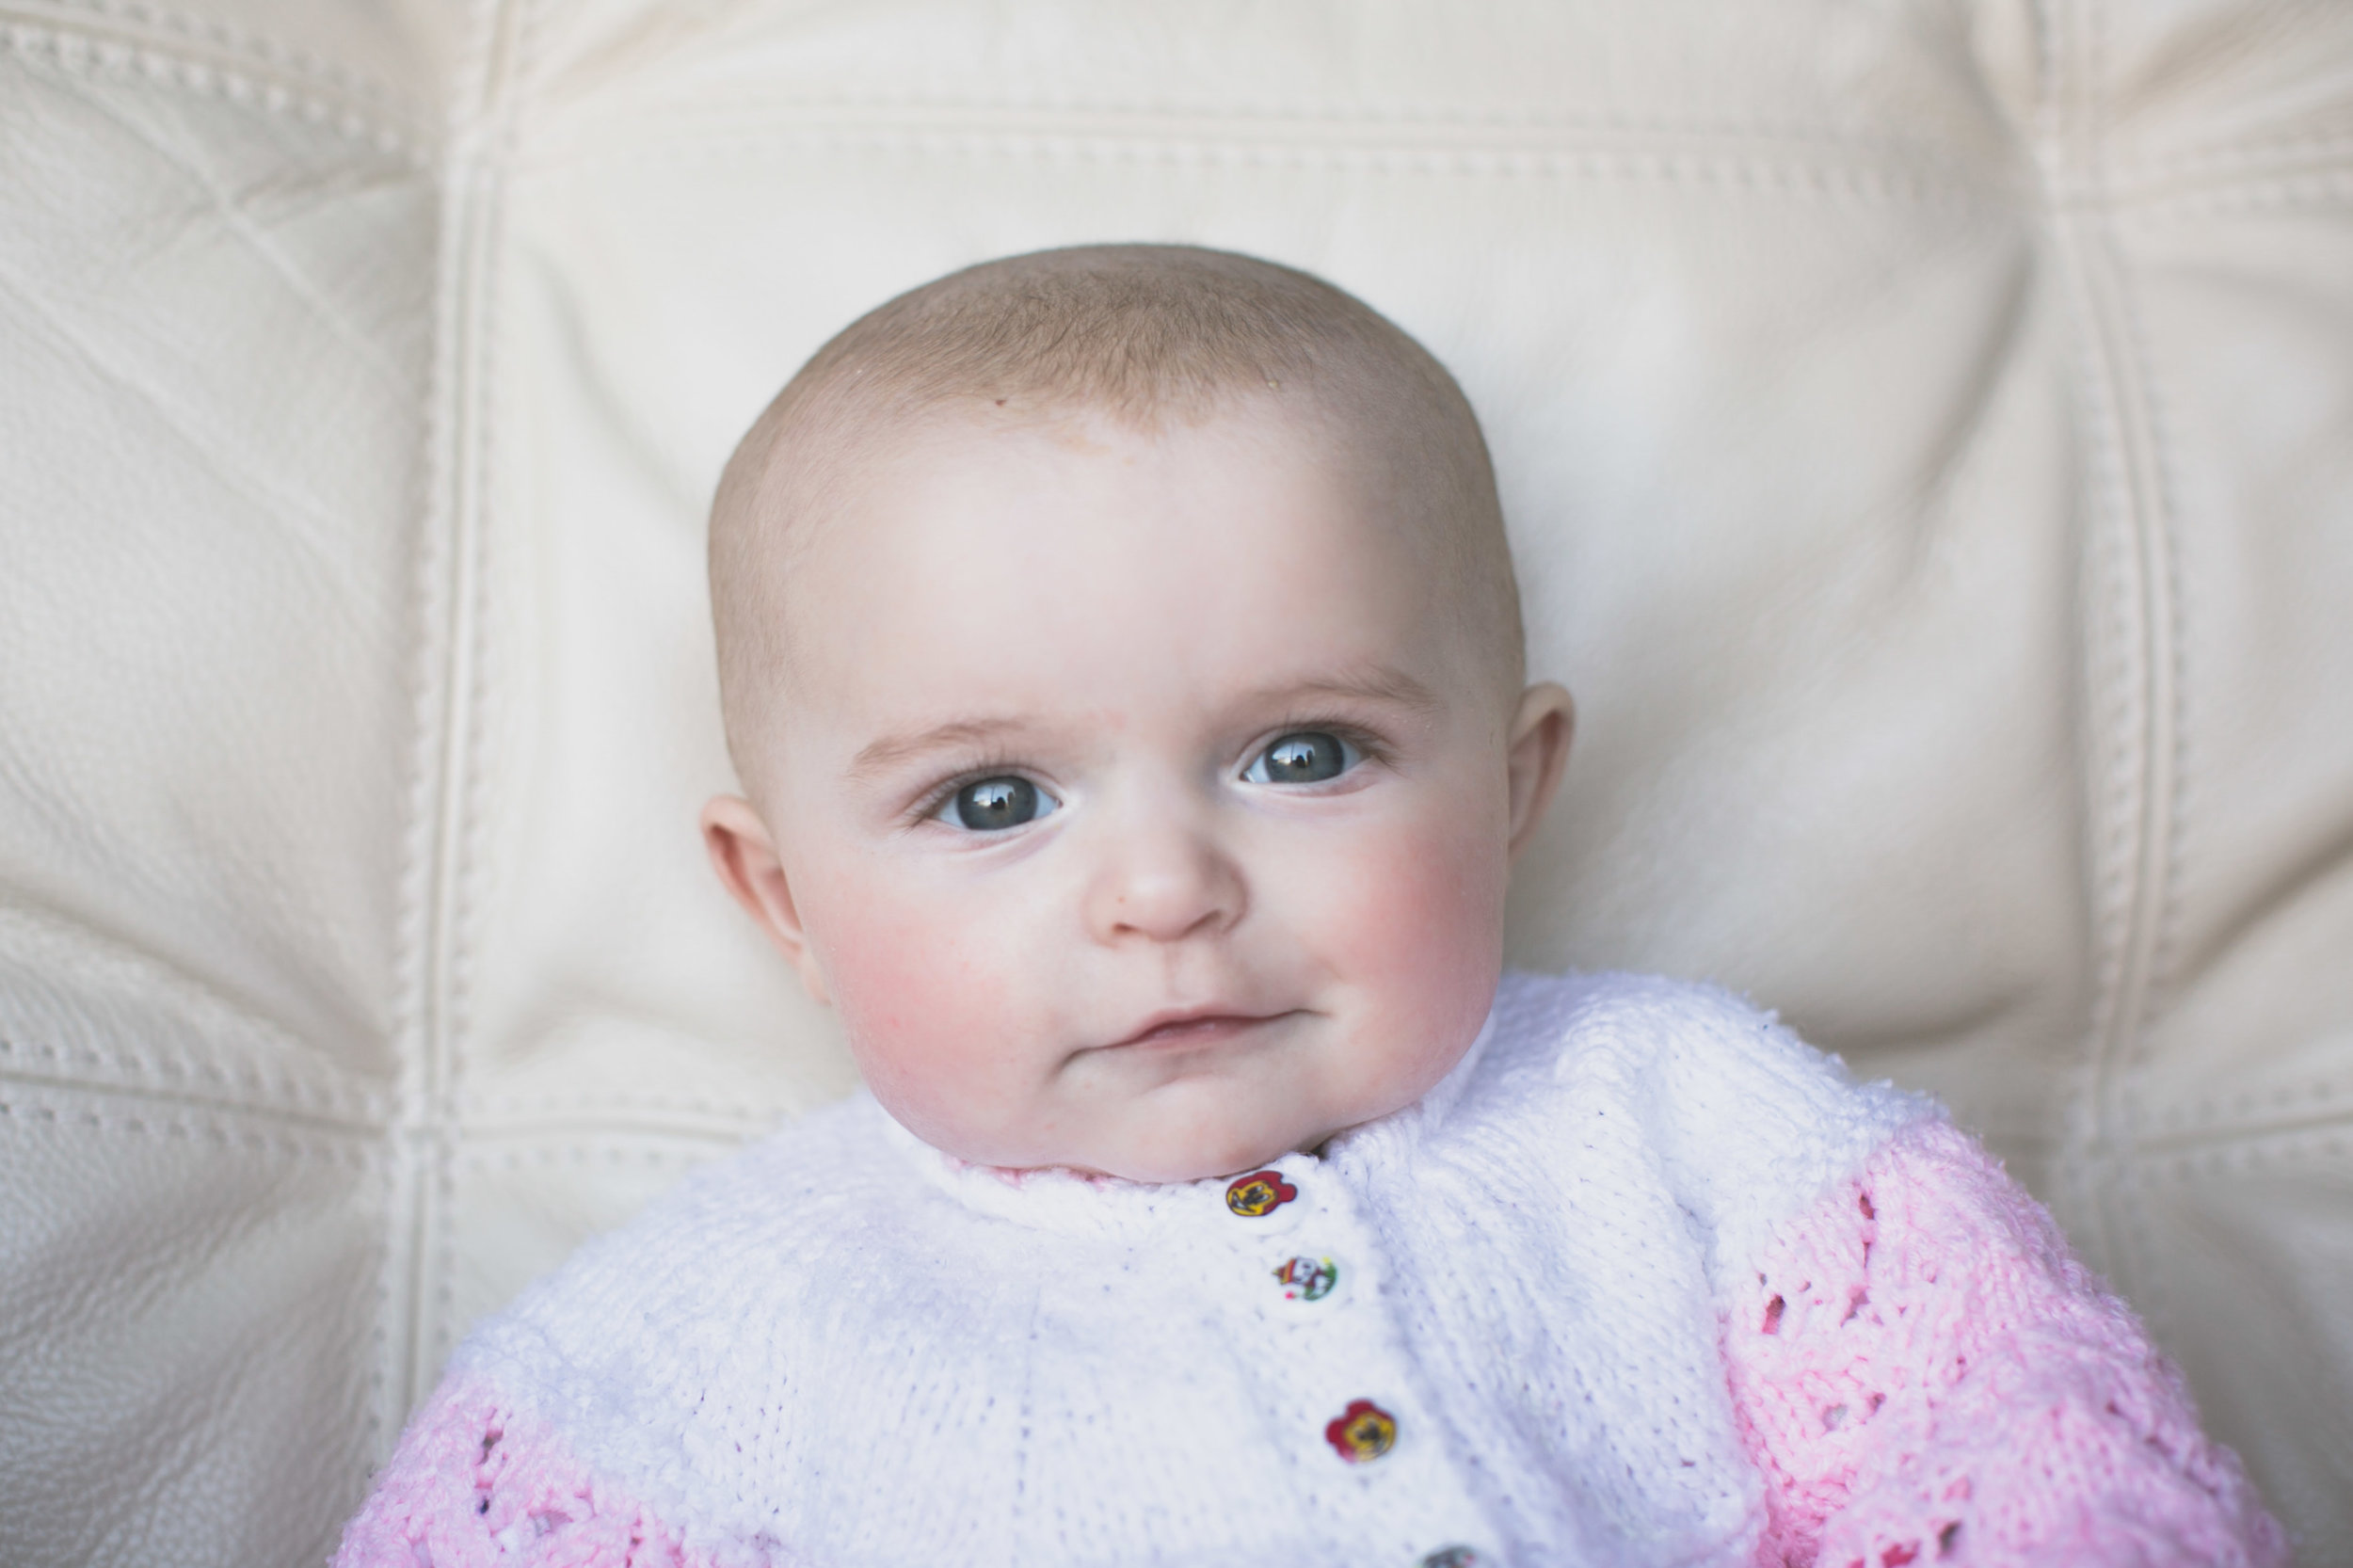 newborn-baby-photography-photographer-chepstow-south-wales-cardiff-newport-bristol-natalia-smith-photography-1.jpg